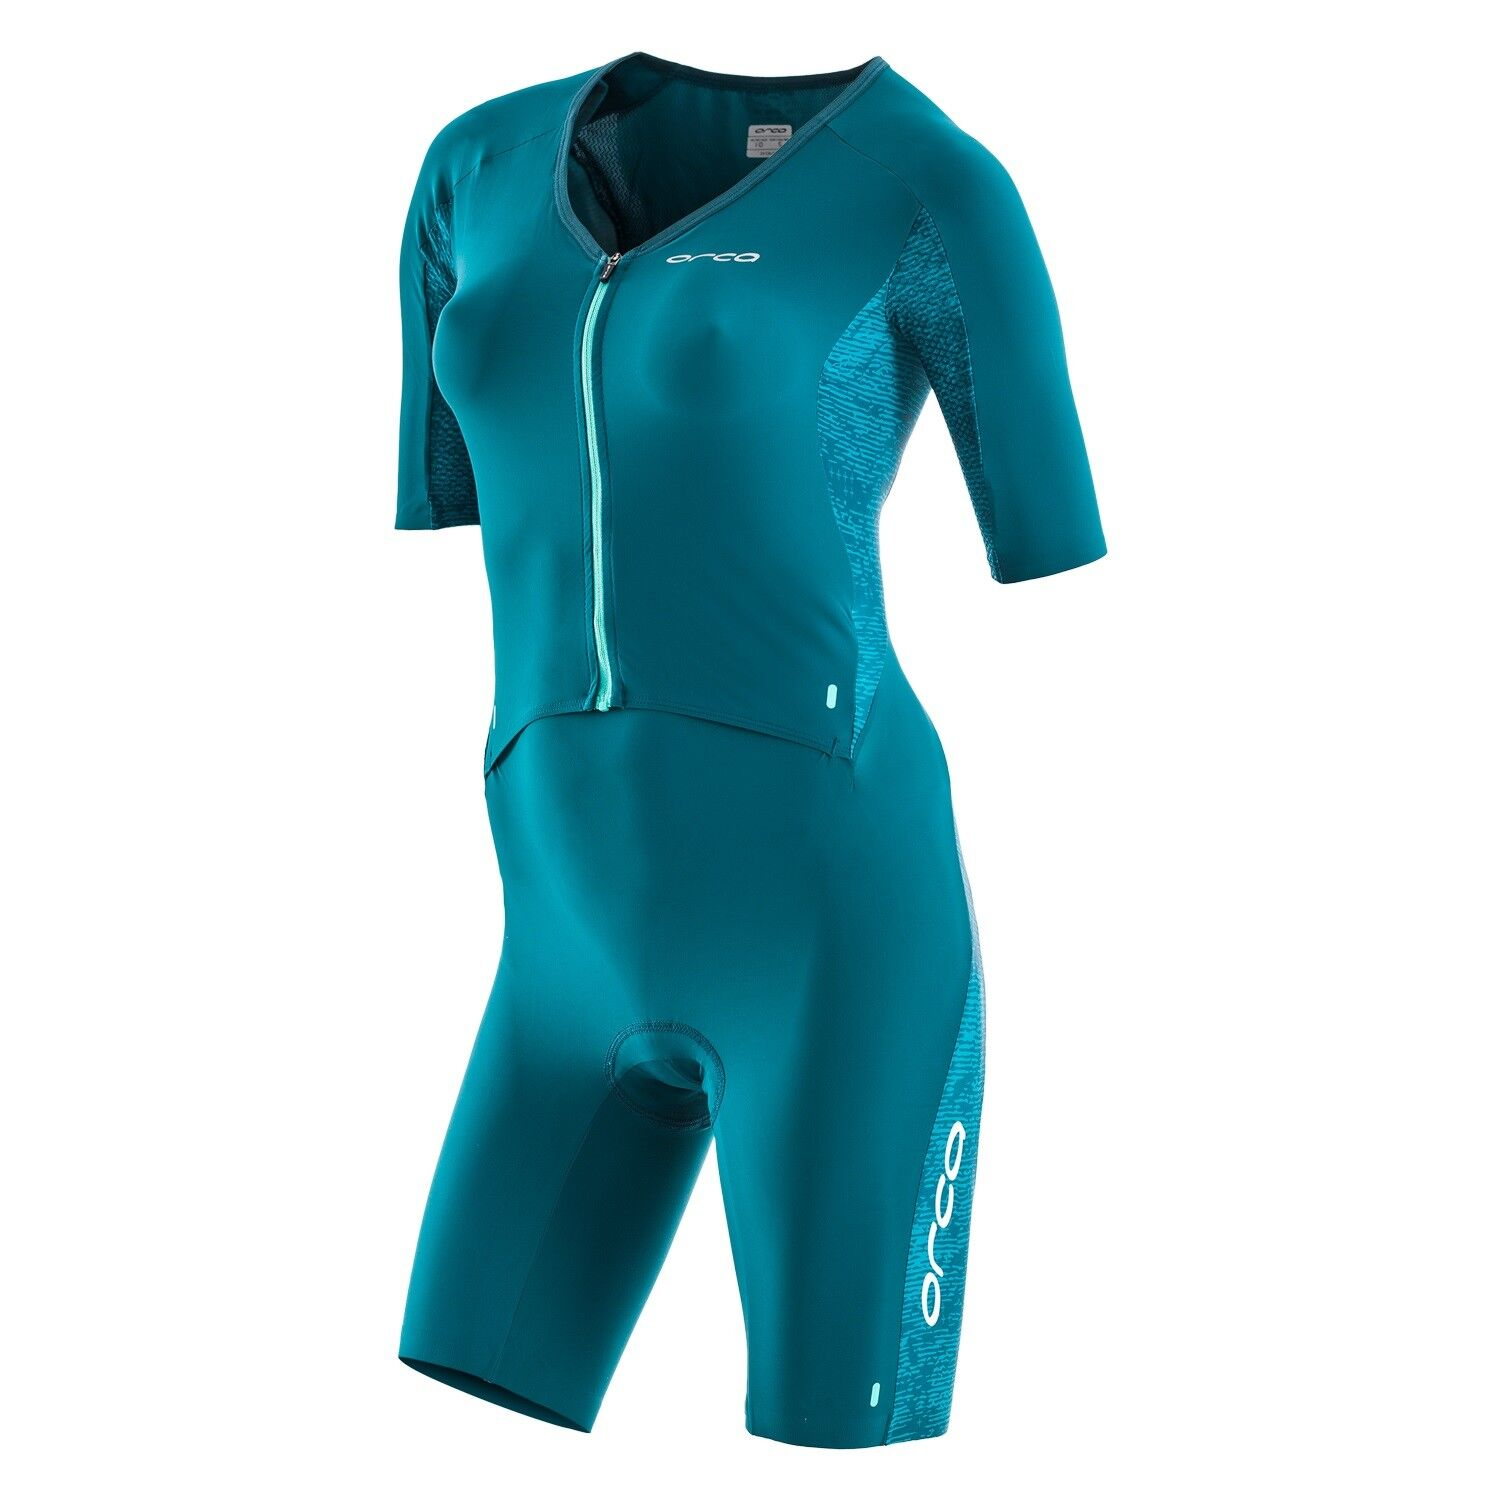 Orca Women's Perform Aero Tri Race Suit - 2019